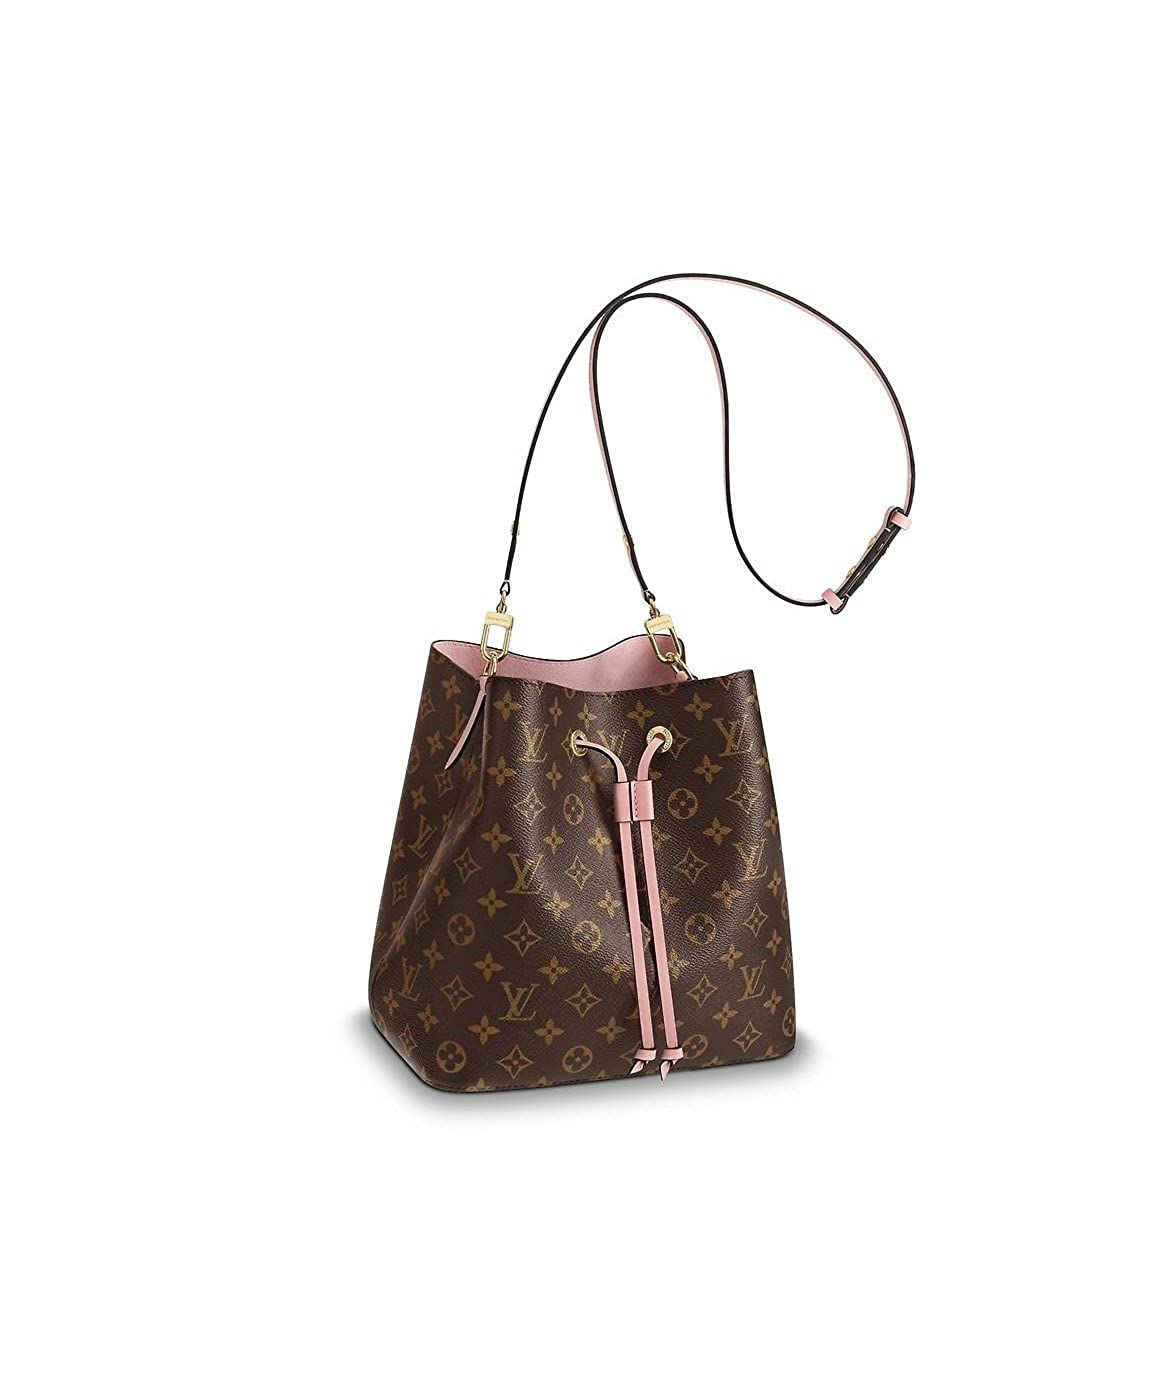 c9438441e1b Louis Vuitton NeoNoe Monogram Canvas Rose Poudre M44022  Handbags   Amazon.com